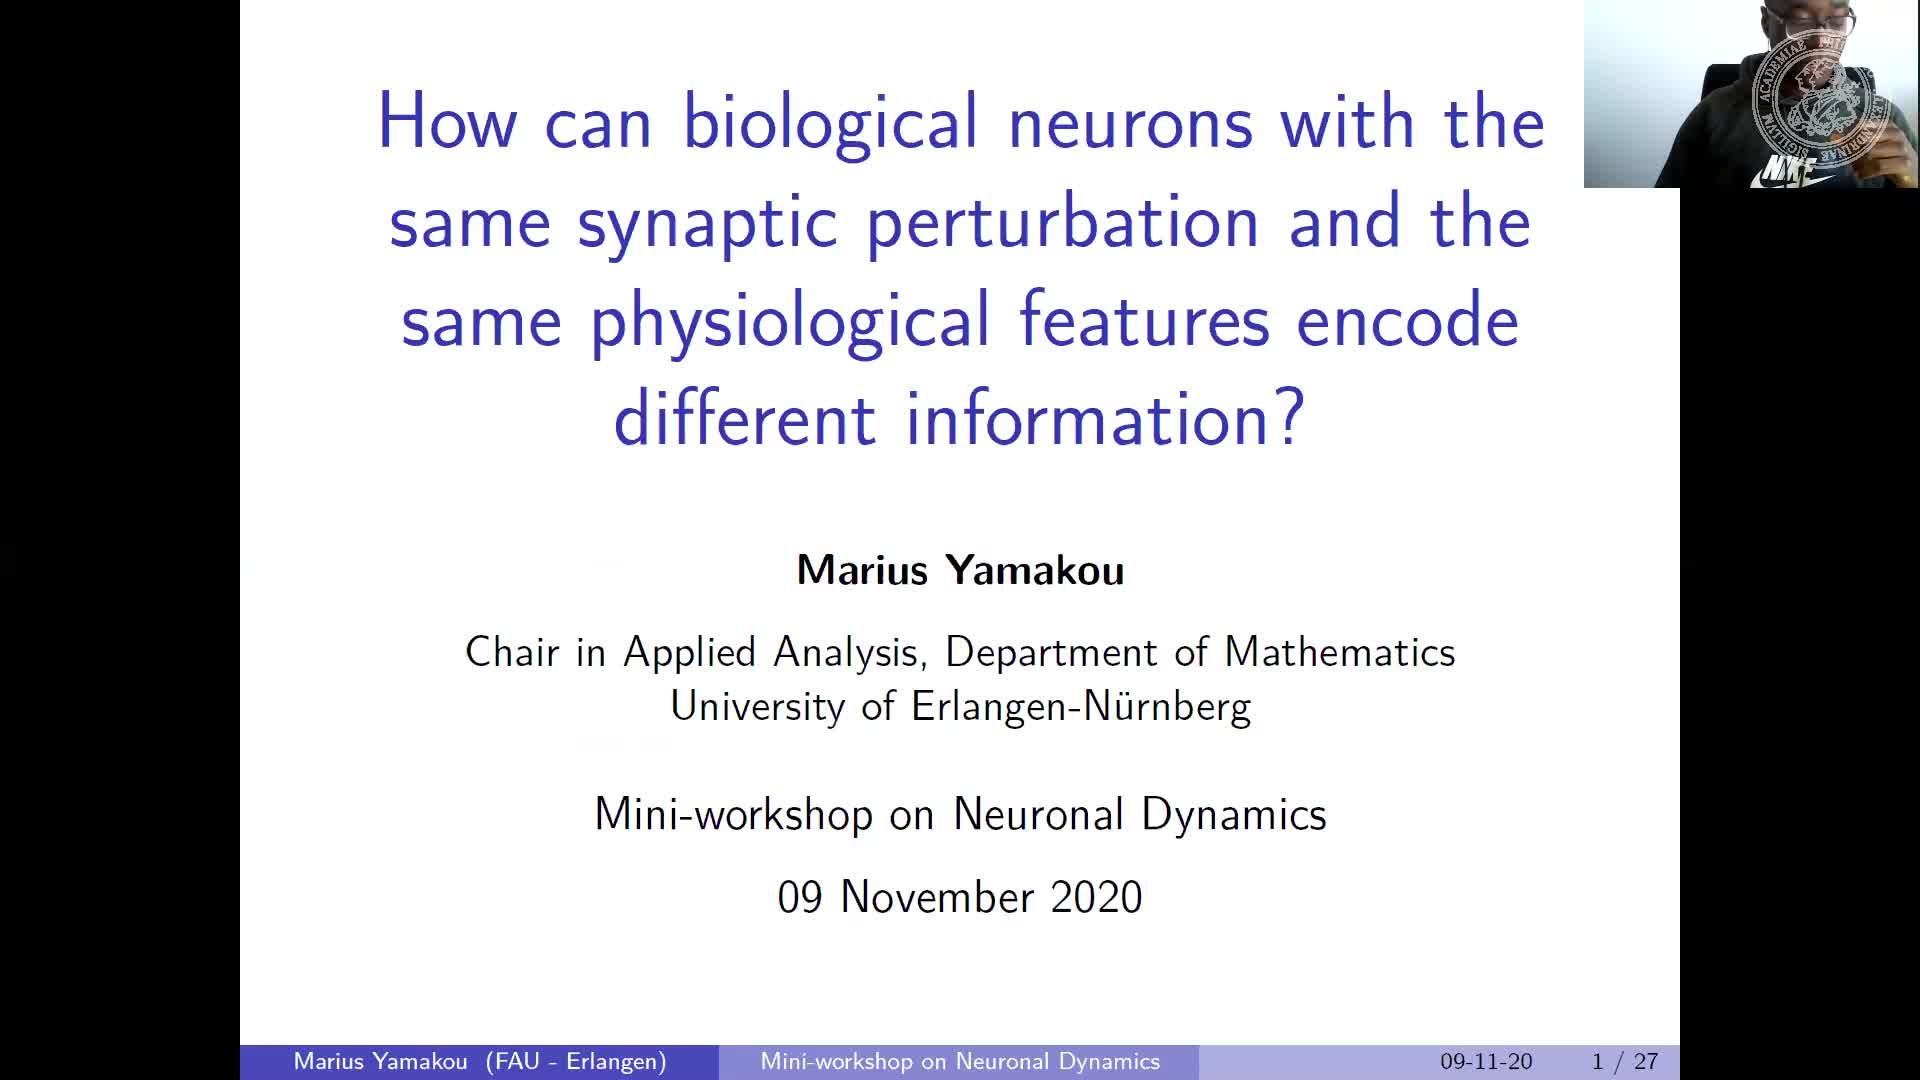 How can biological neurons with similar synaptic inputs and physiological features encode different information? (Marius Yamakou, FAU) preview image